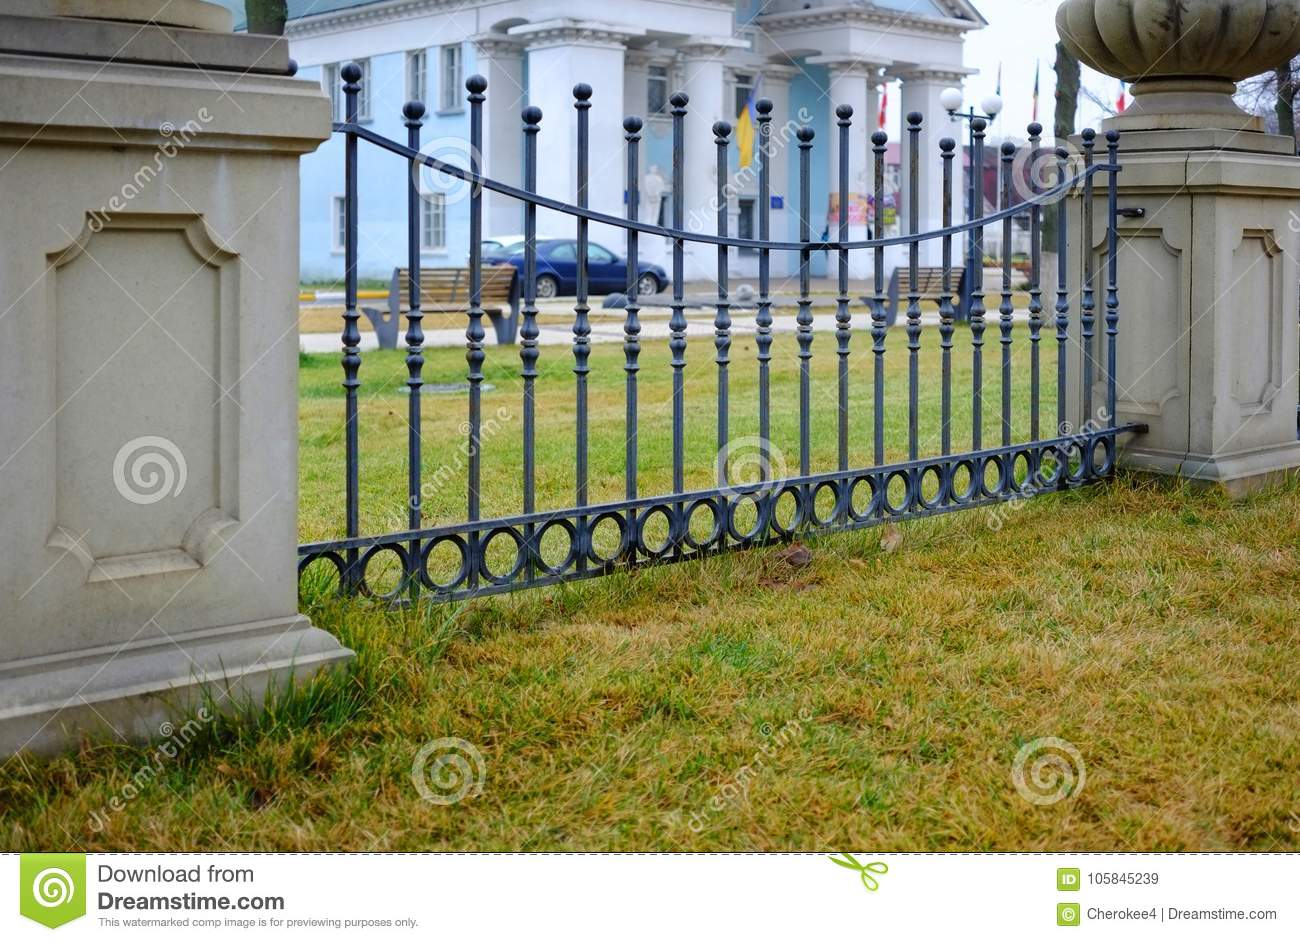 Picture of: Green Lawn In Front Of A Decorative Fence With Bars Background Beautiful Wrought Fence Image Of A Decorative Cast Iron Fence Stock Image Image Of Beautiful Bars 105845239